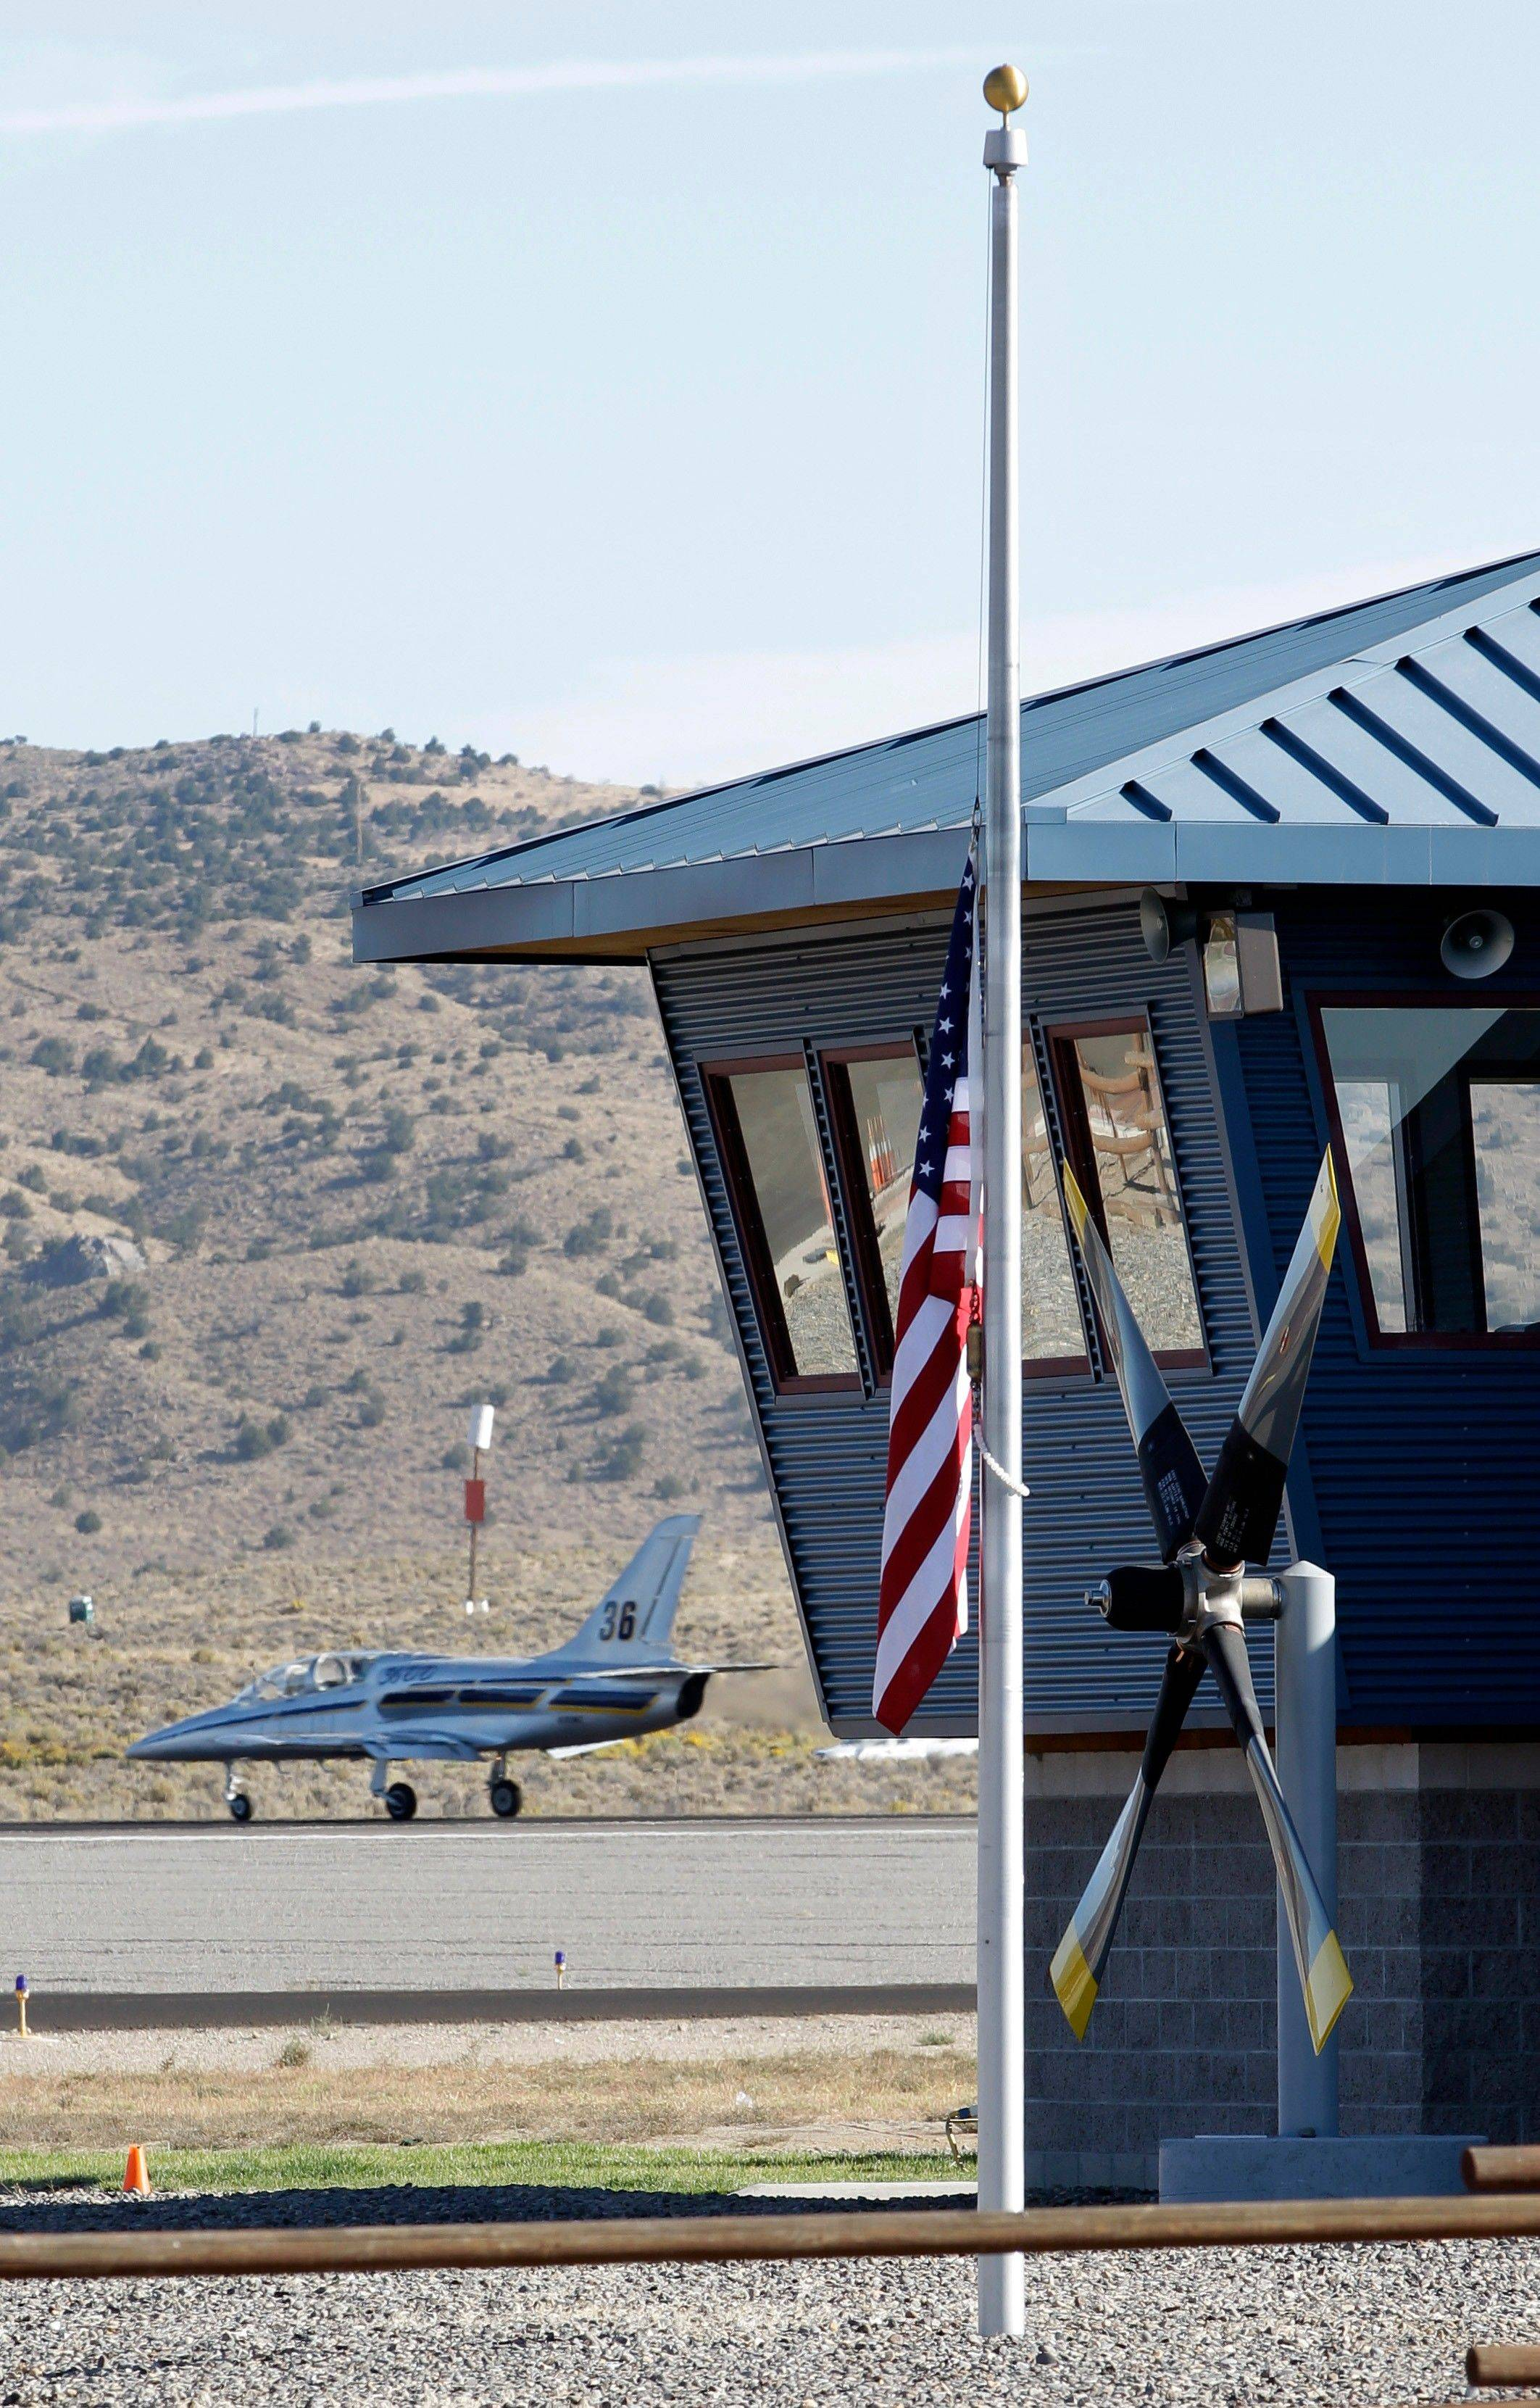 A plane prepares to take off Monday as an American flag flies at half-staff in front of a control tower at an airport in Reno, Nev., where the Reno Air Races were held.